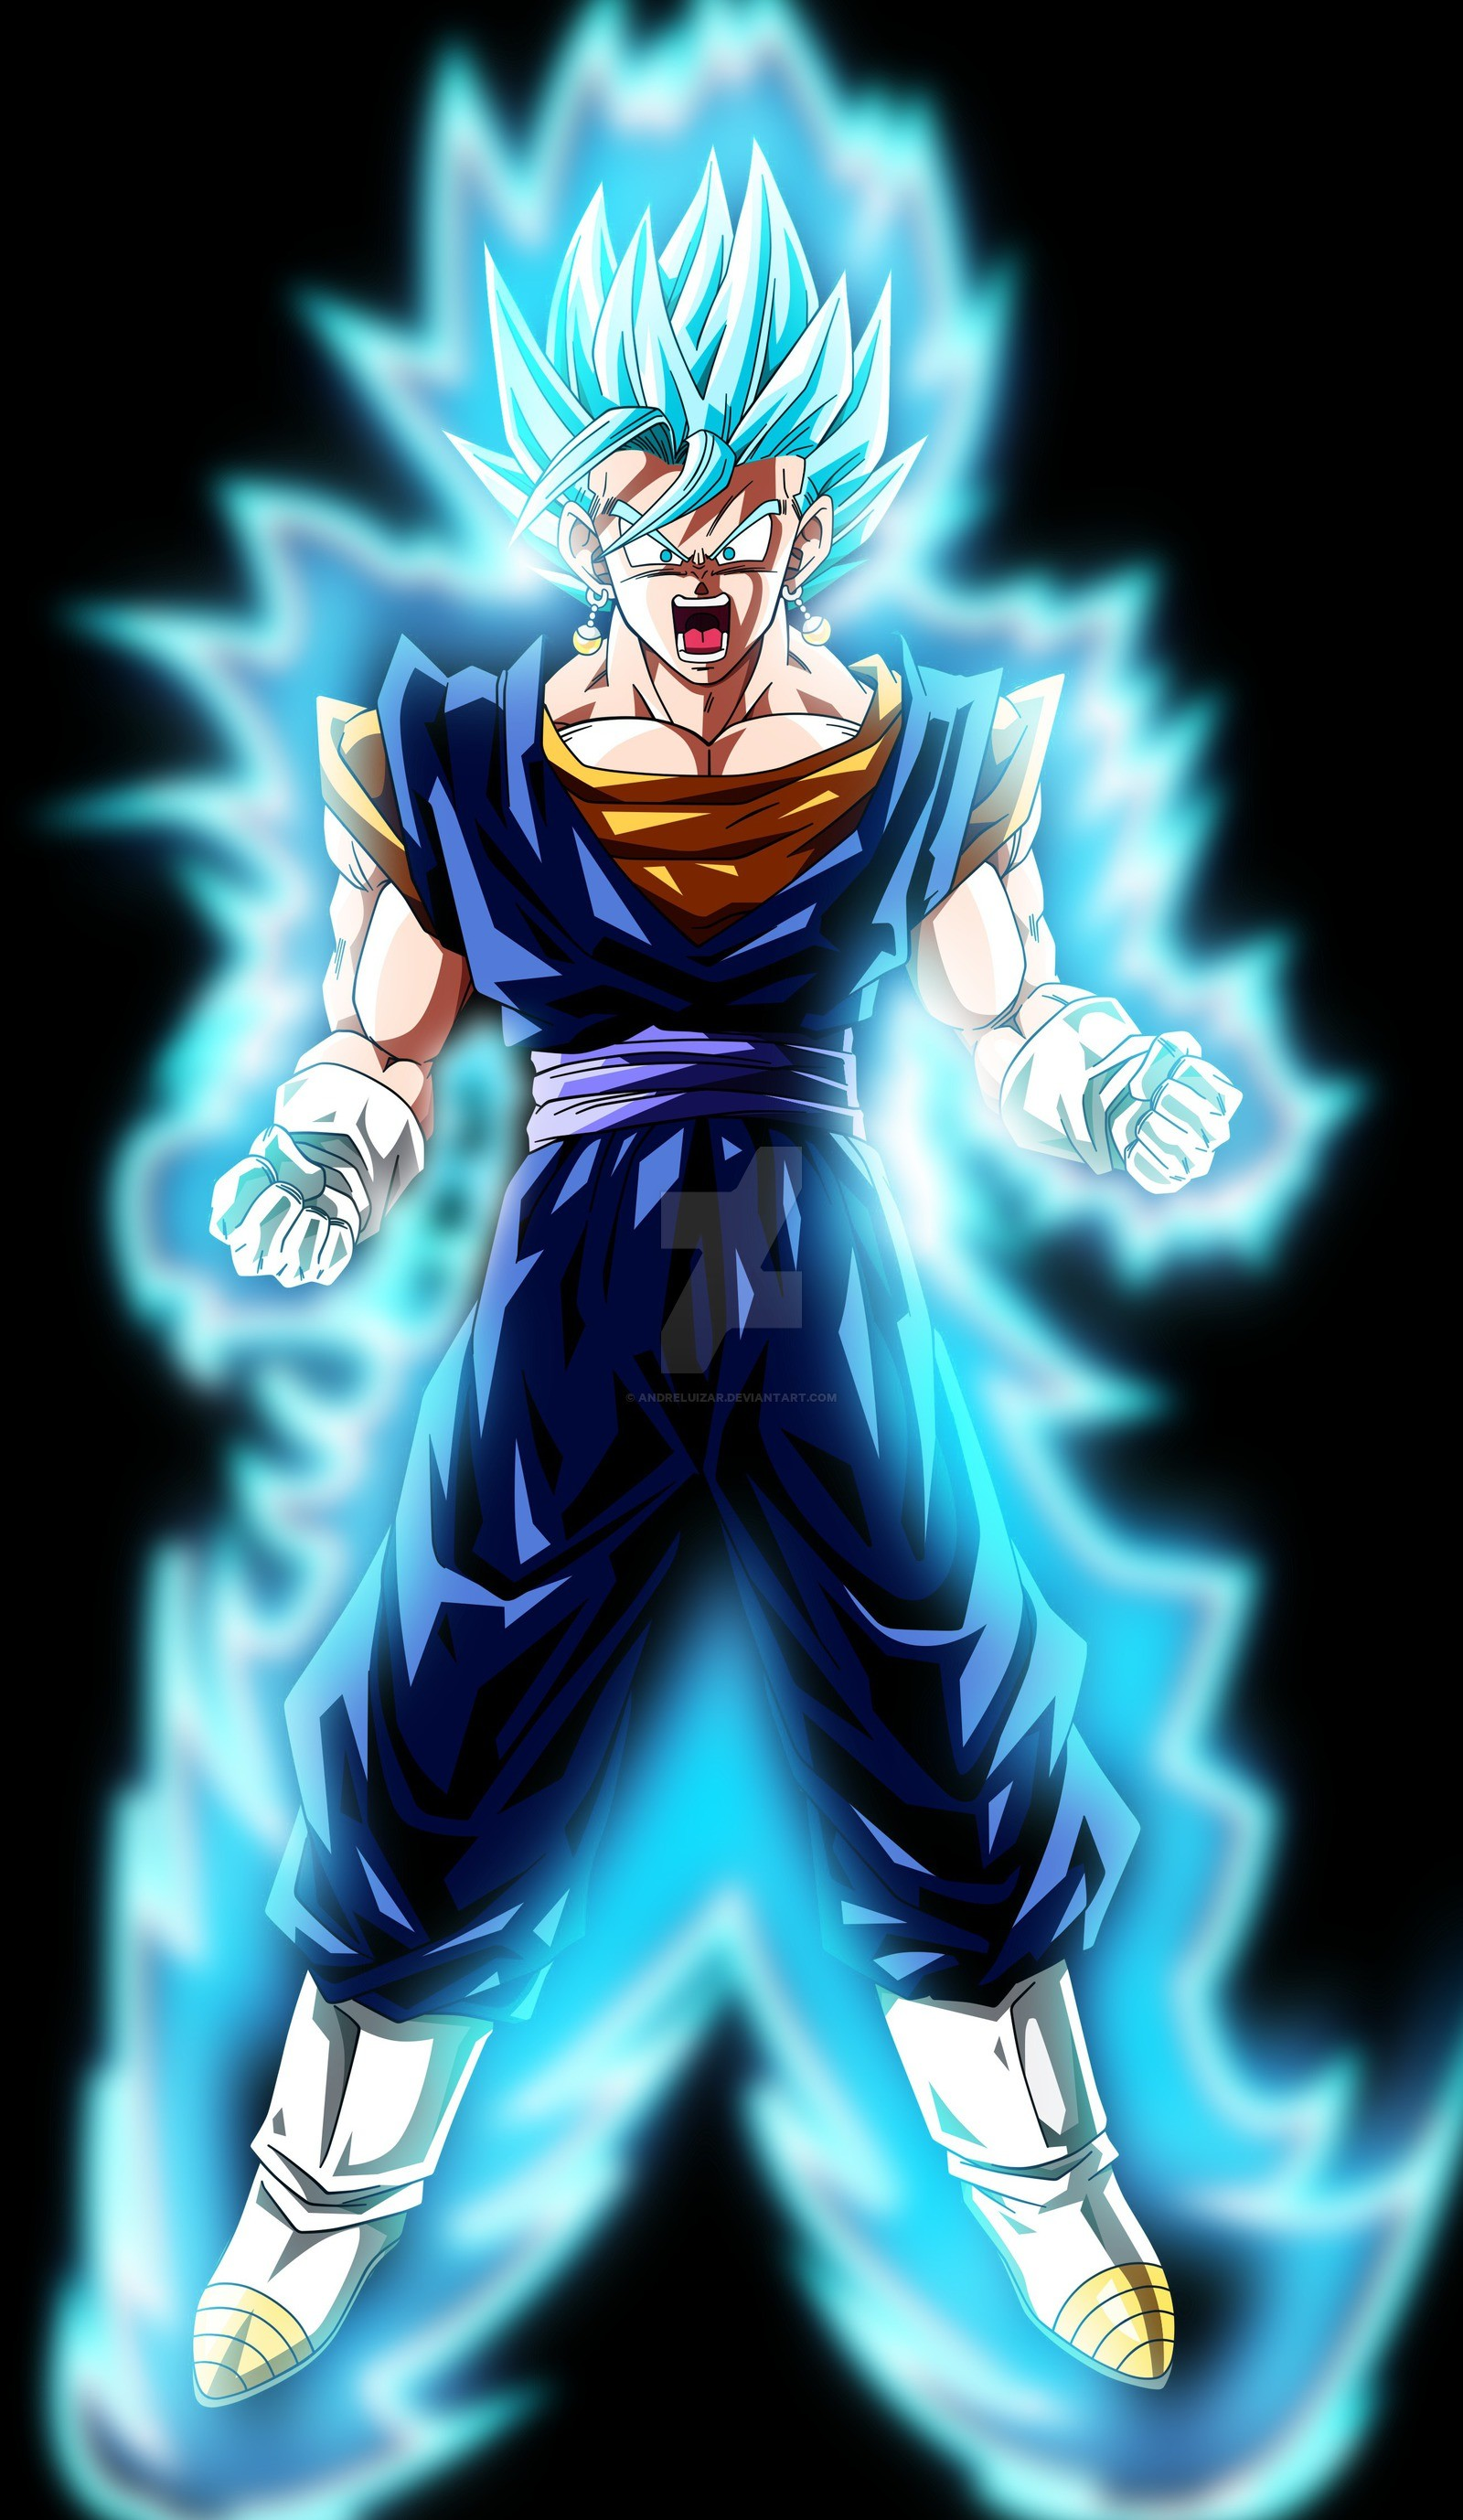 goku live wallpaper iphone x download - ▷ ▷ powermall